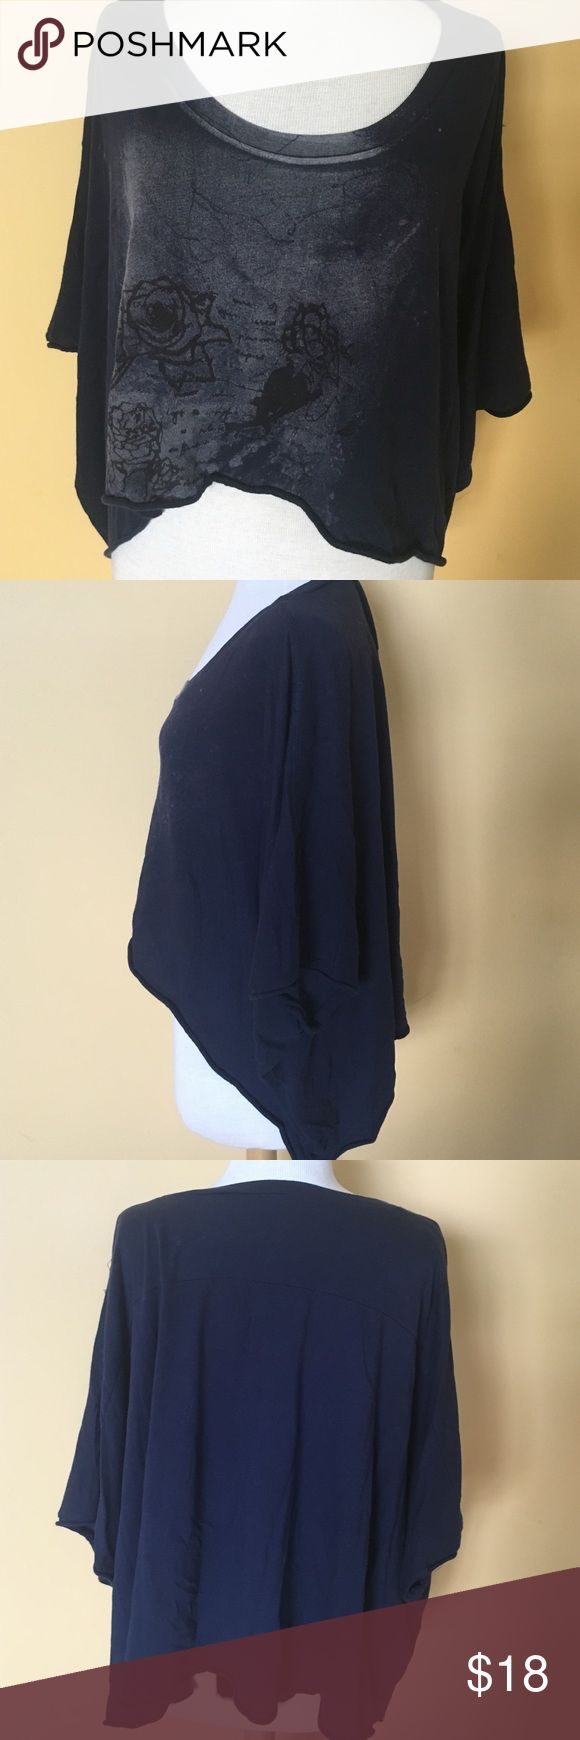 Free People t shirt Free People We the Free top, size xs/s in navy blue, raw edges, batwing sleeve, EUC Free People Tops Tees - Short Sleeve